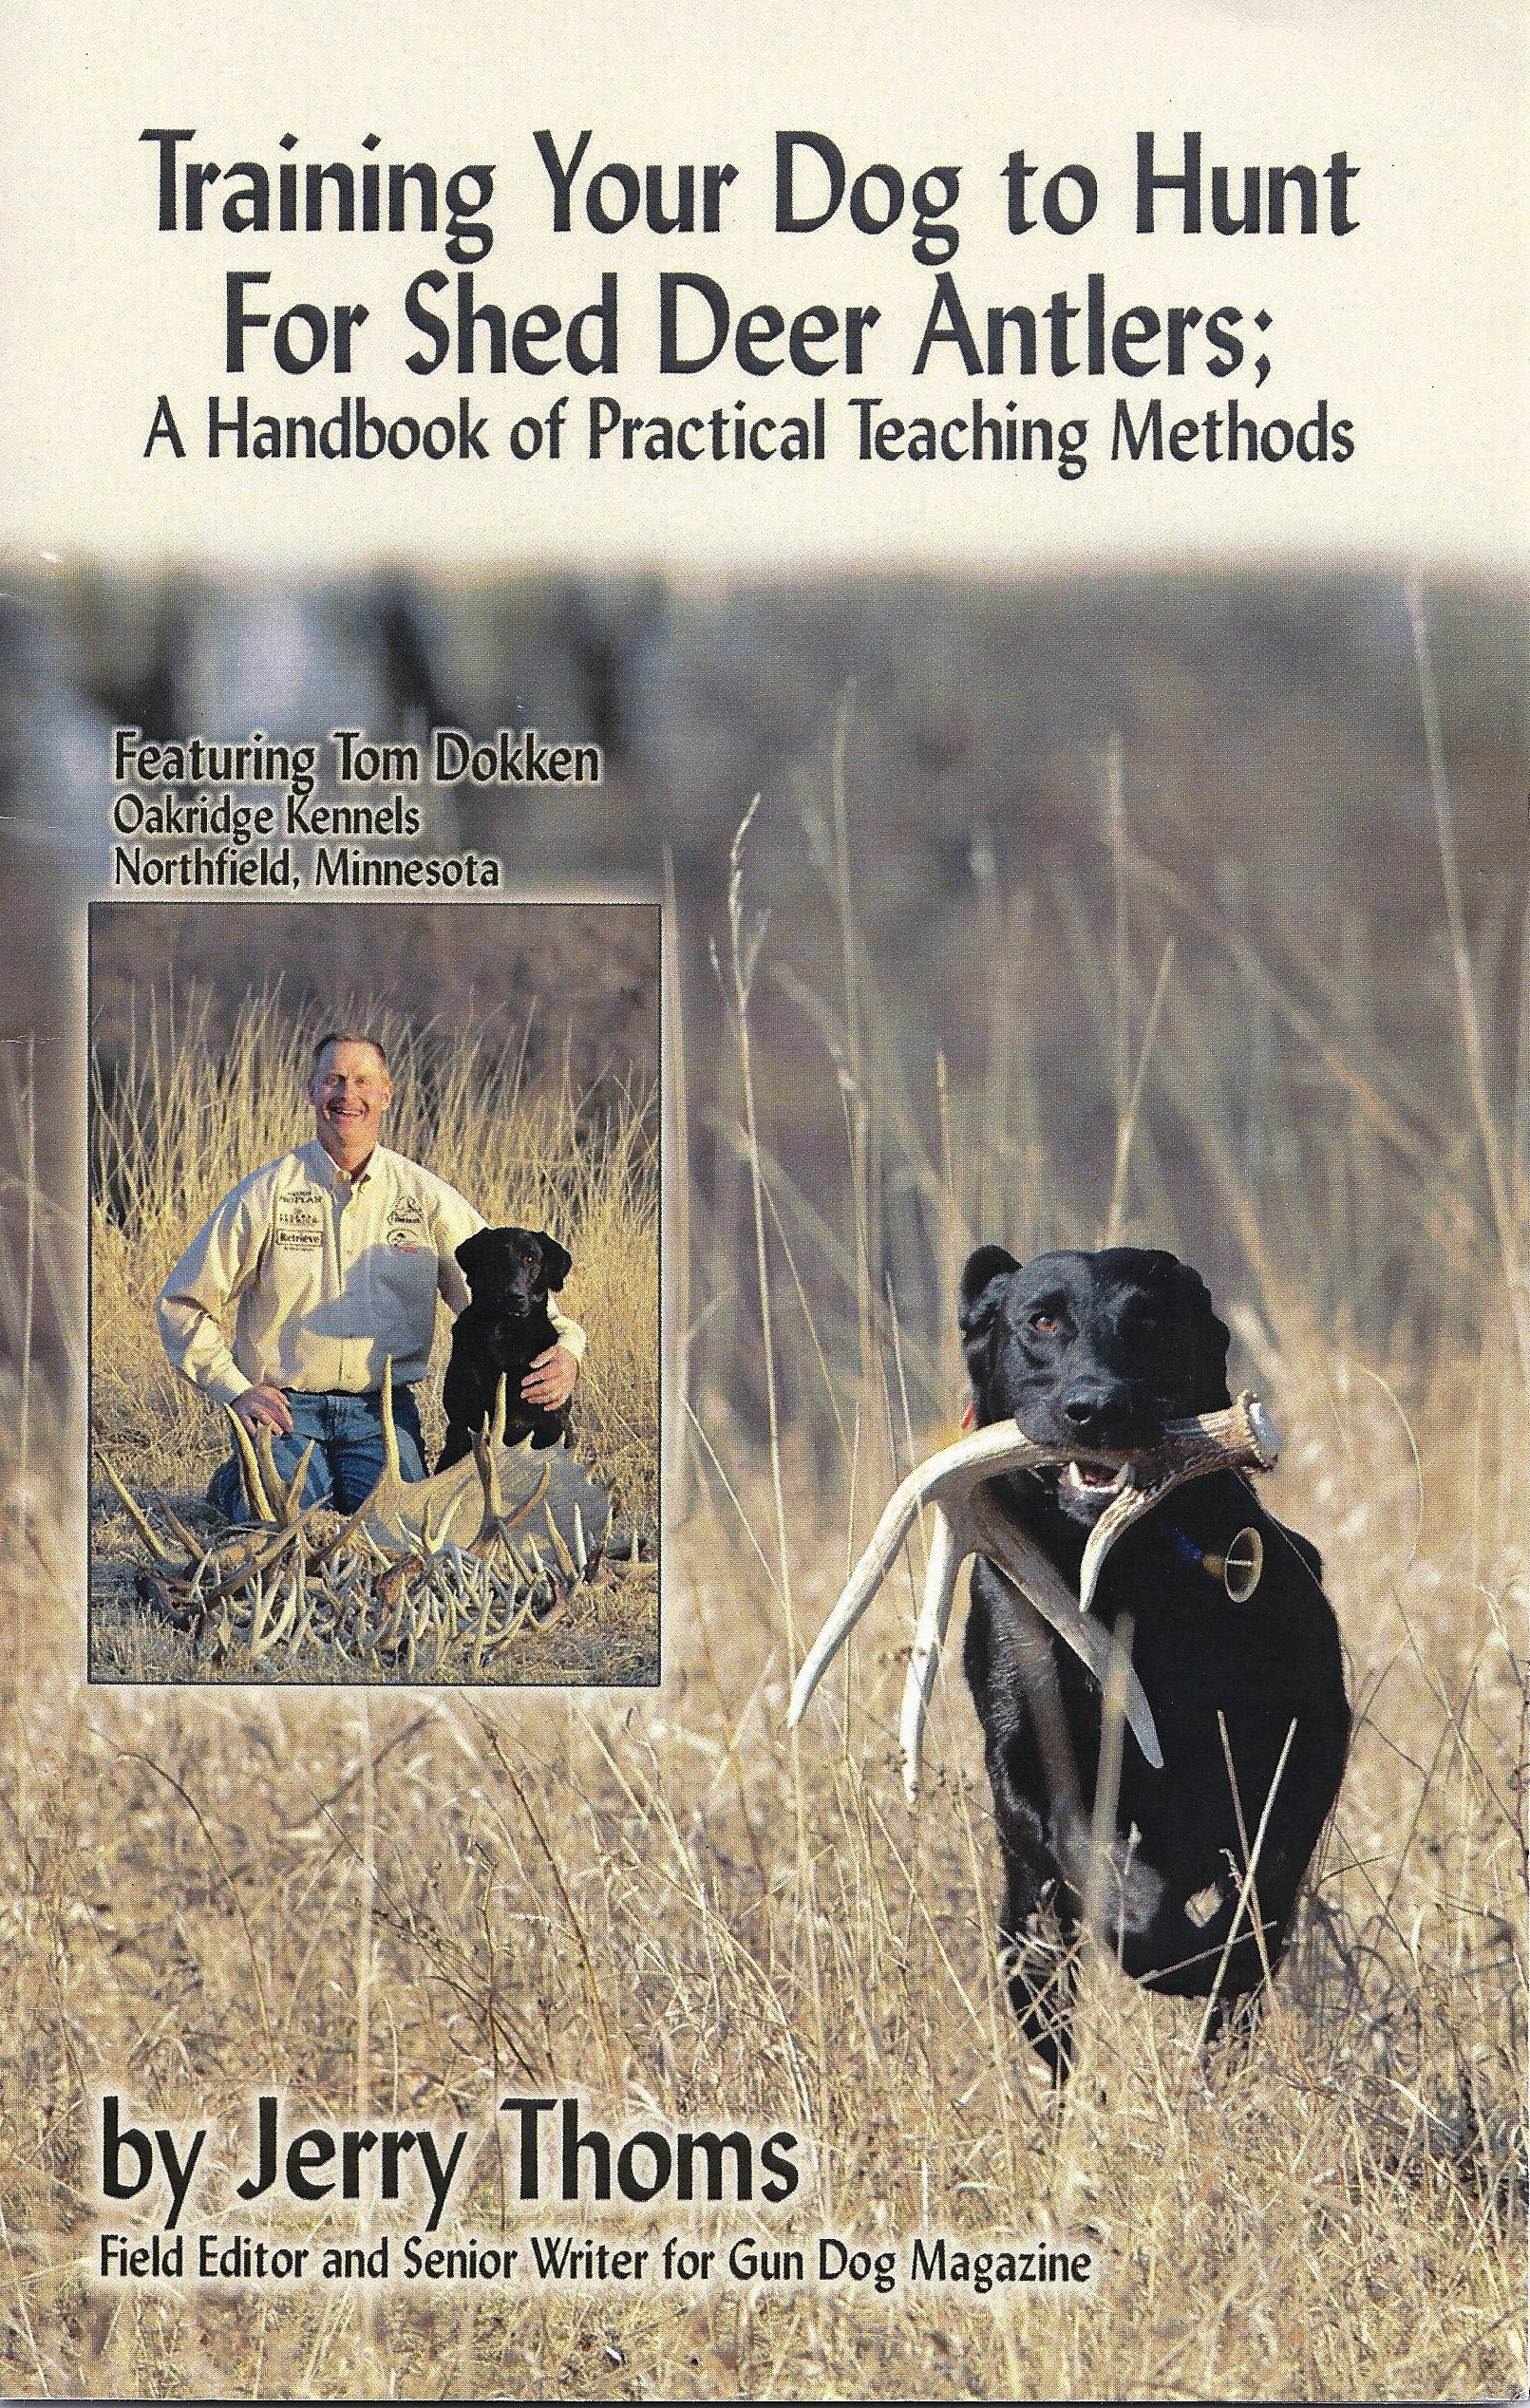 Train Your Dog to Hunt Sheds